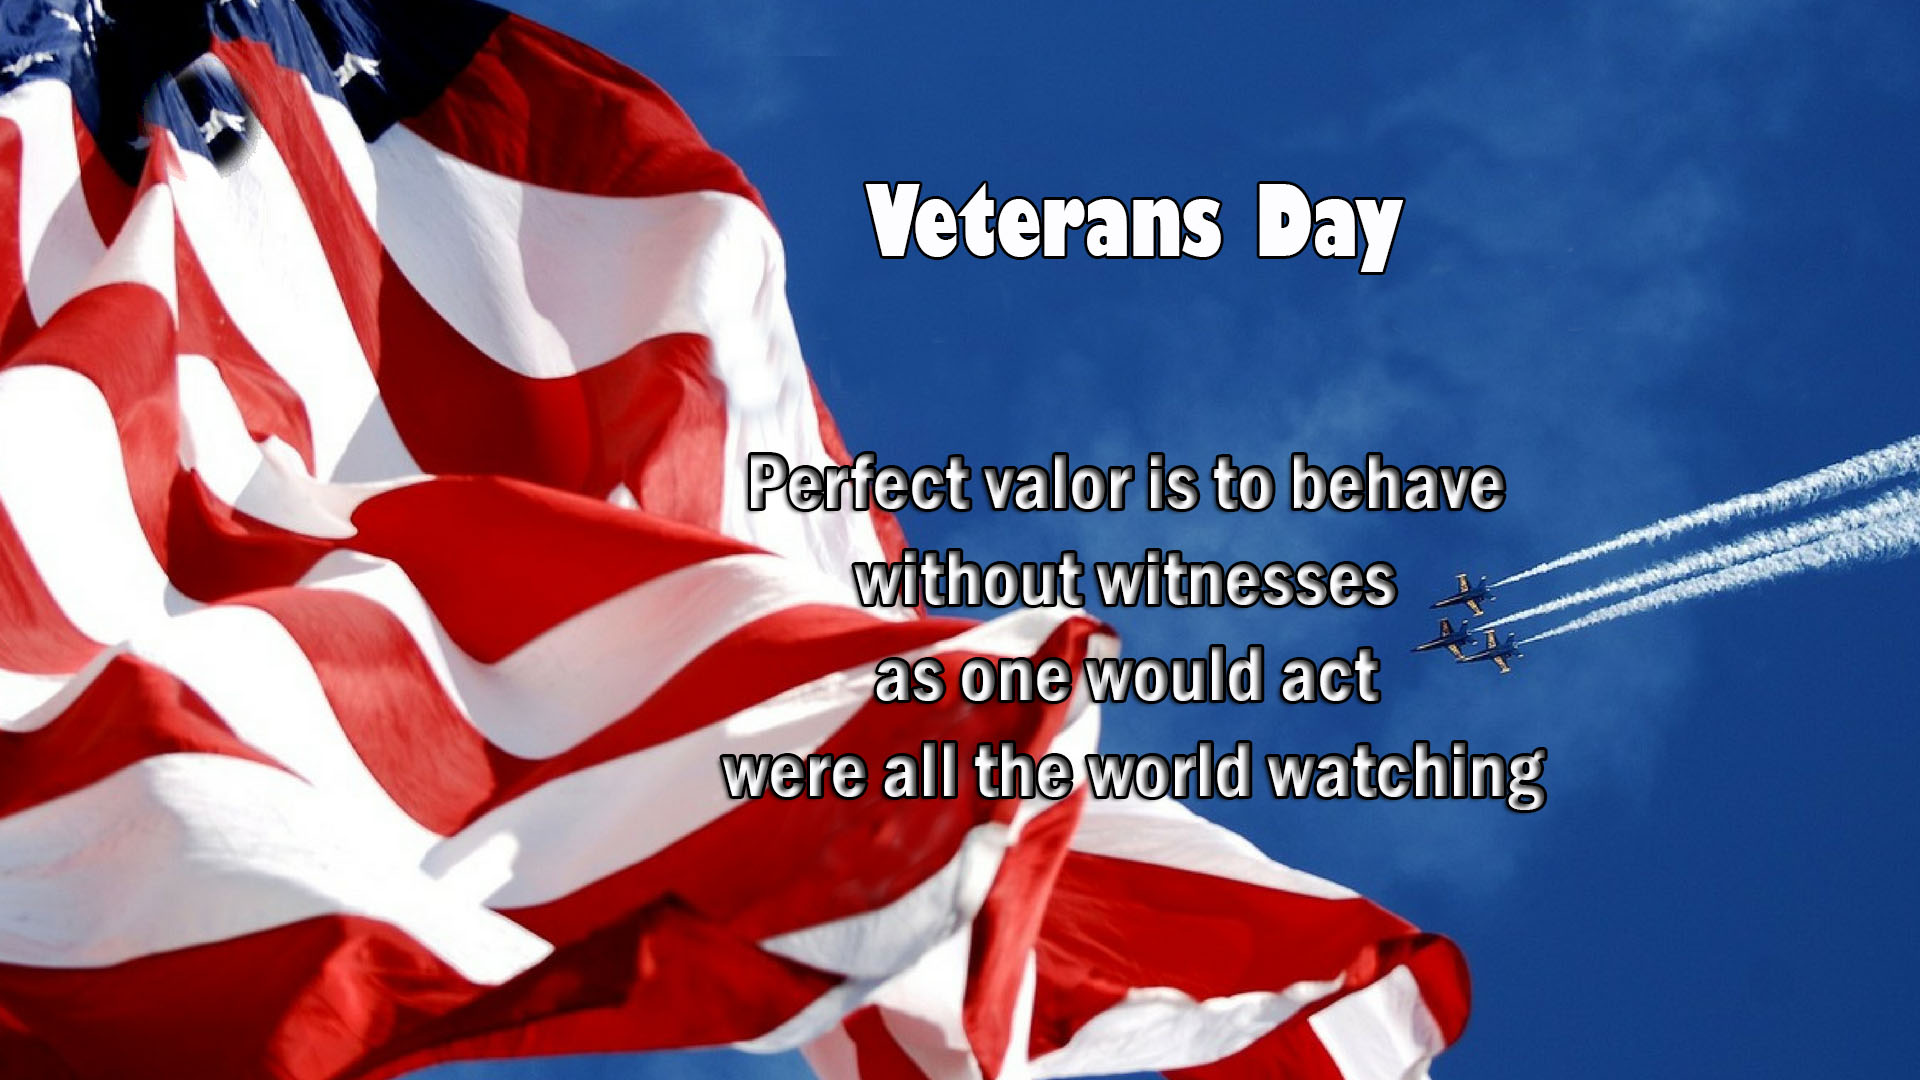 happy-veterans-day-wallpapers-images-posters-2017